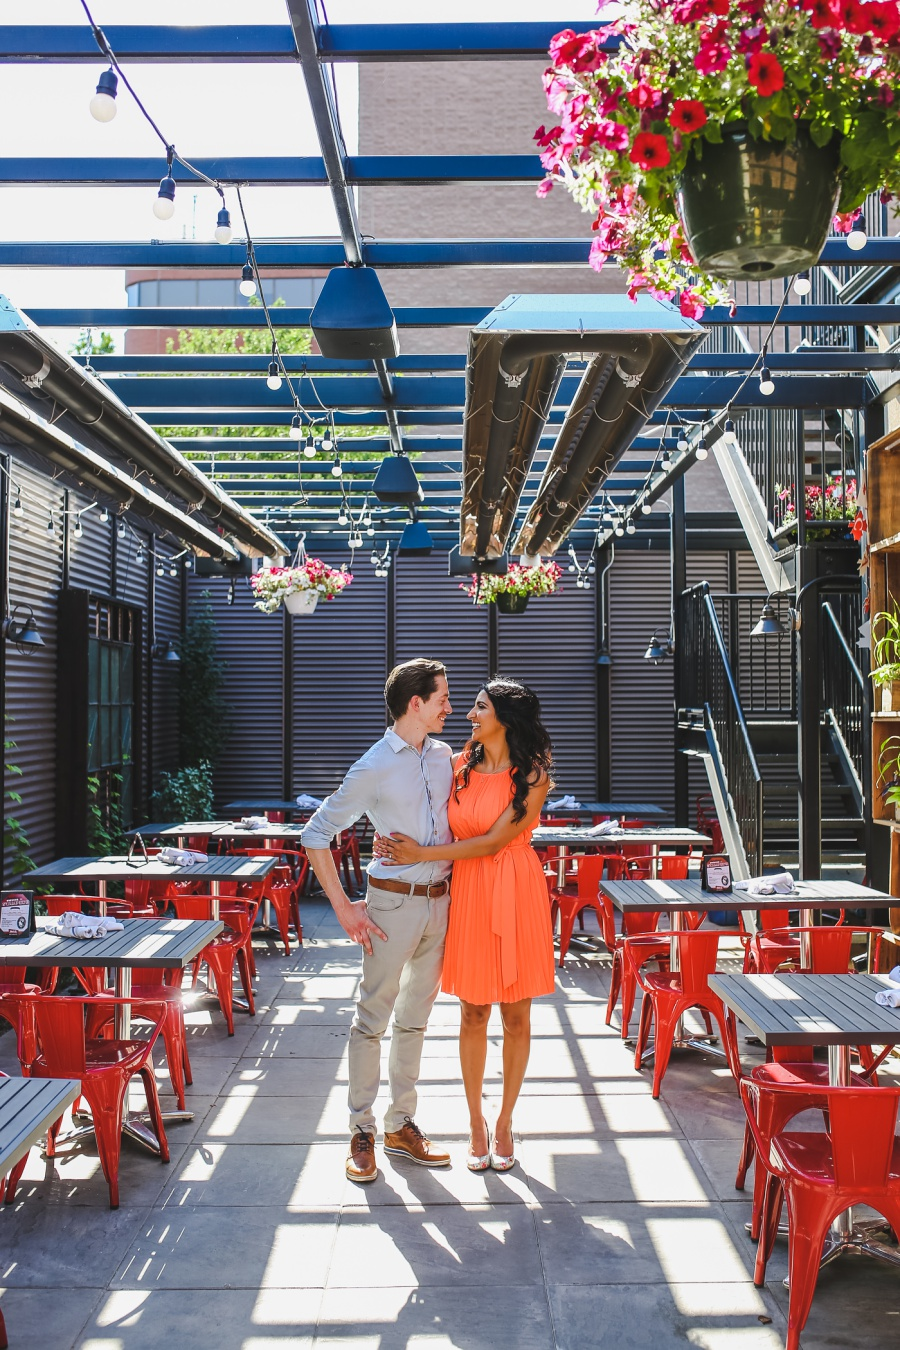 mill street brewpub calgary engagement photos red chairs patio